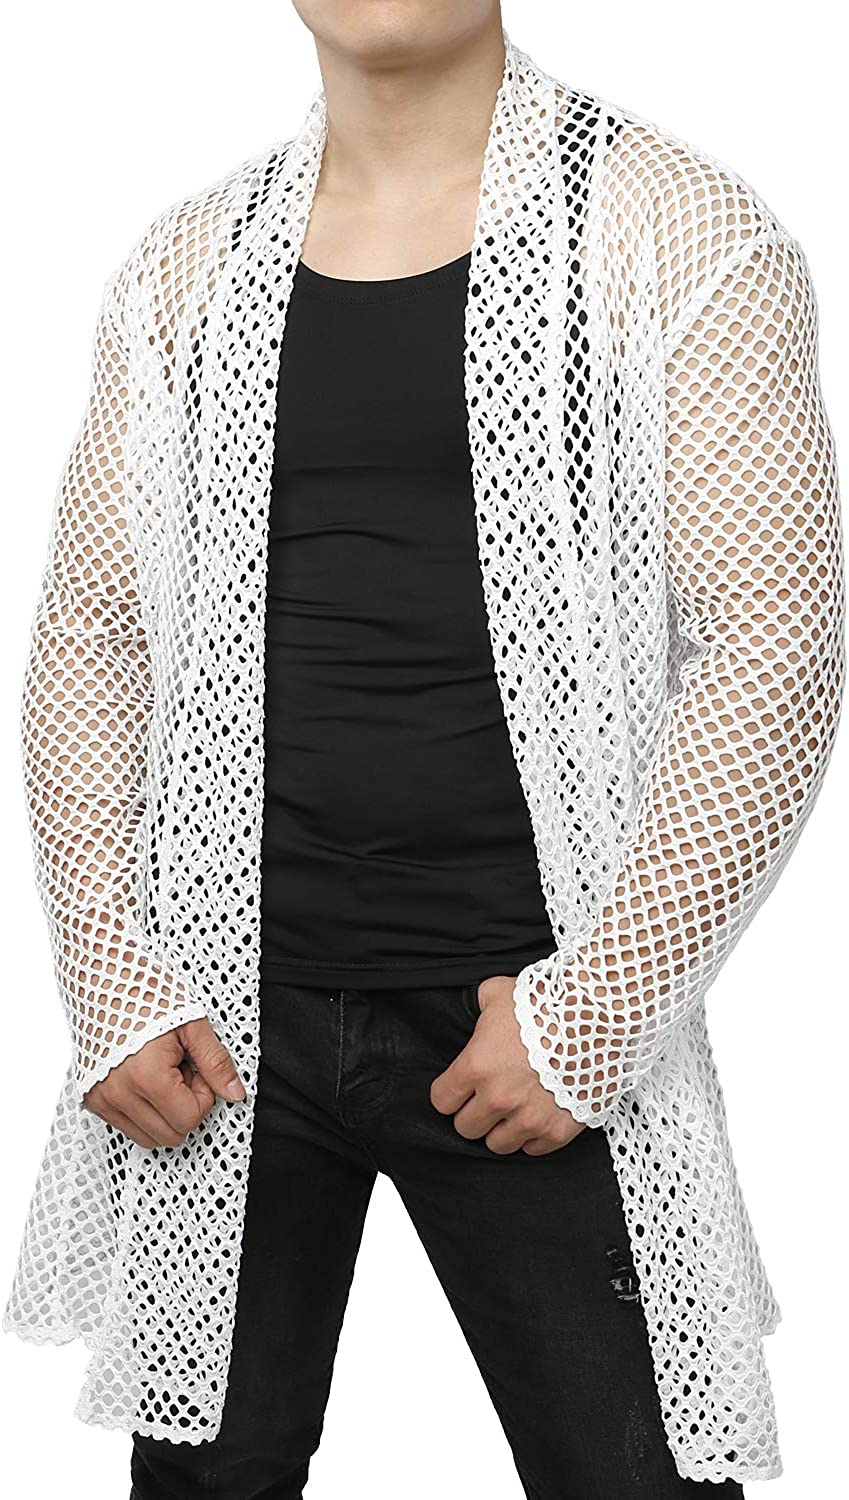 JOGAL Men's Mesh Fishnet Cardigan Fitted Muscle Top